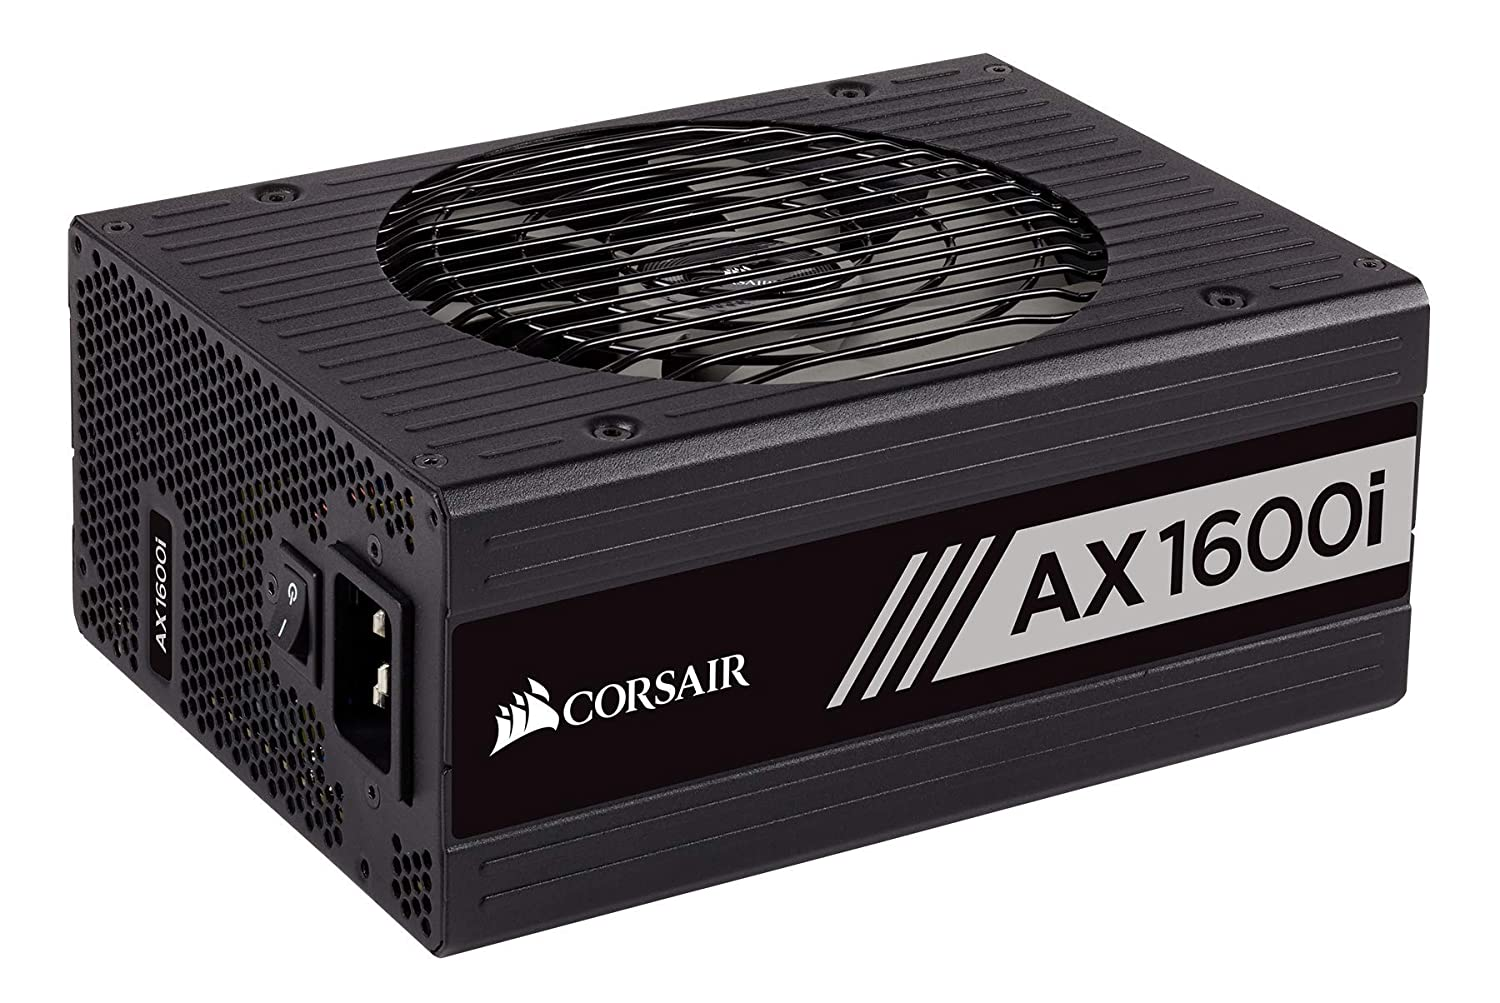 CORSAIR AXi Series, AX1600i, 1600 Watt, 80+ Titanium Certified, Fully Modular - Digital Power Supply